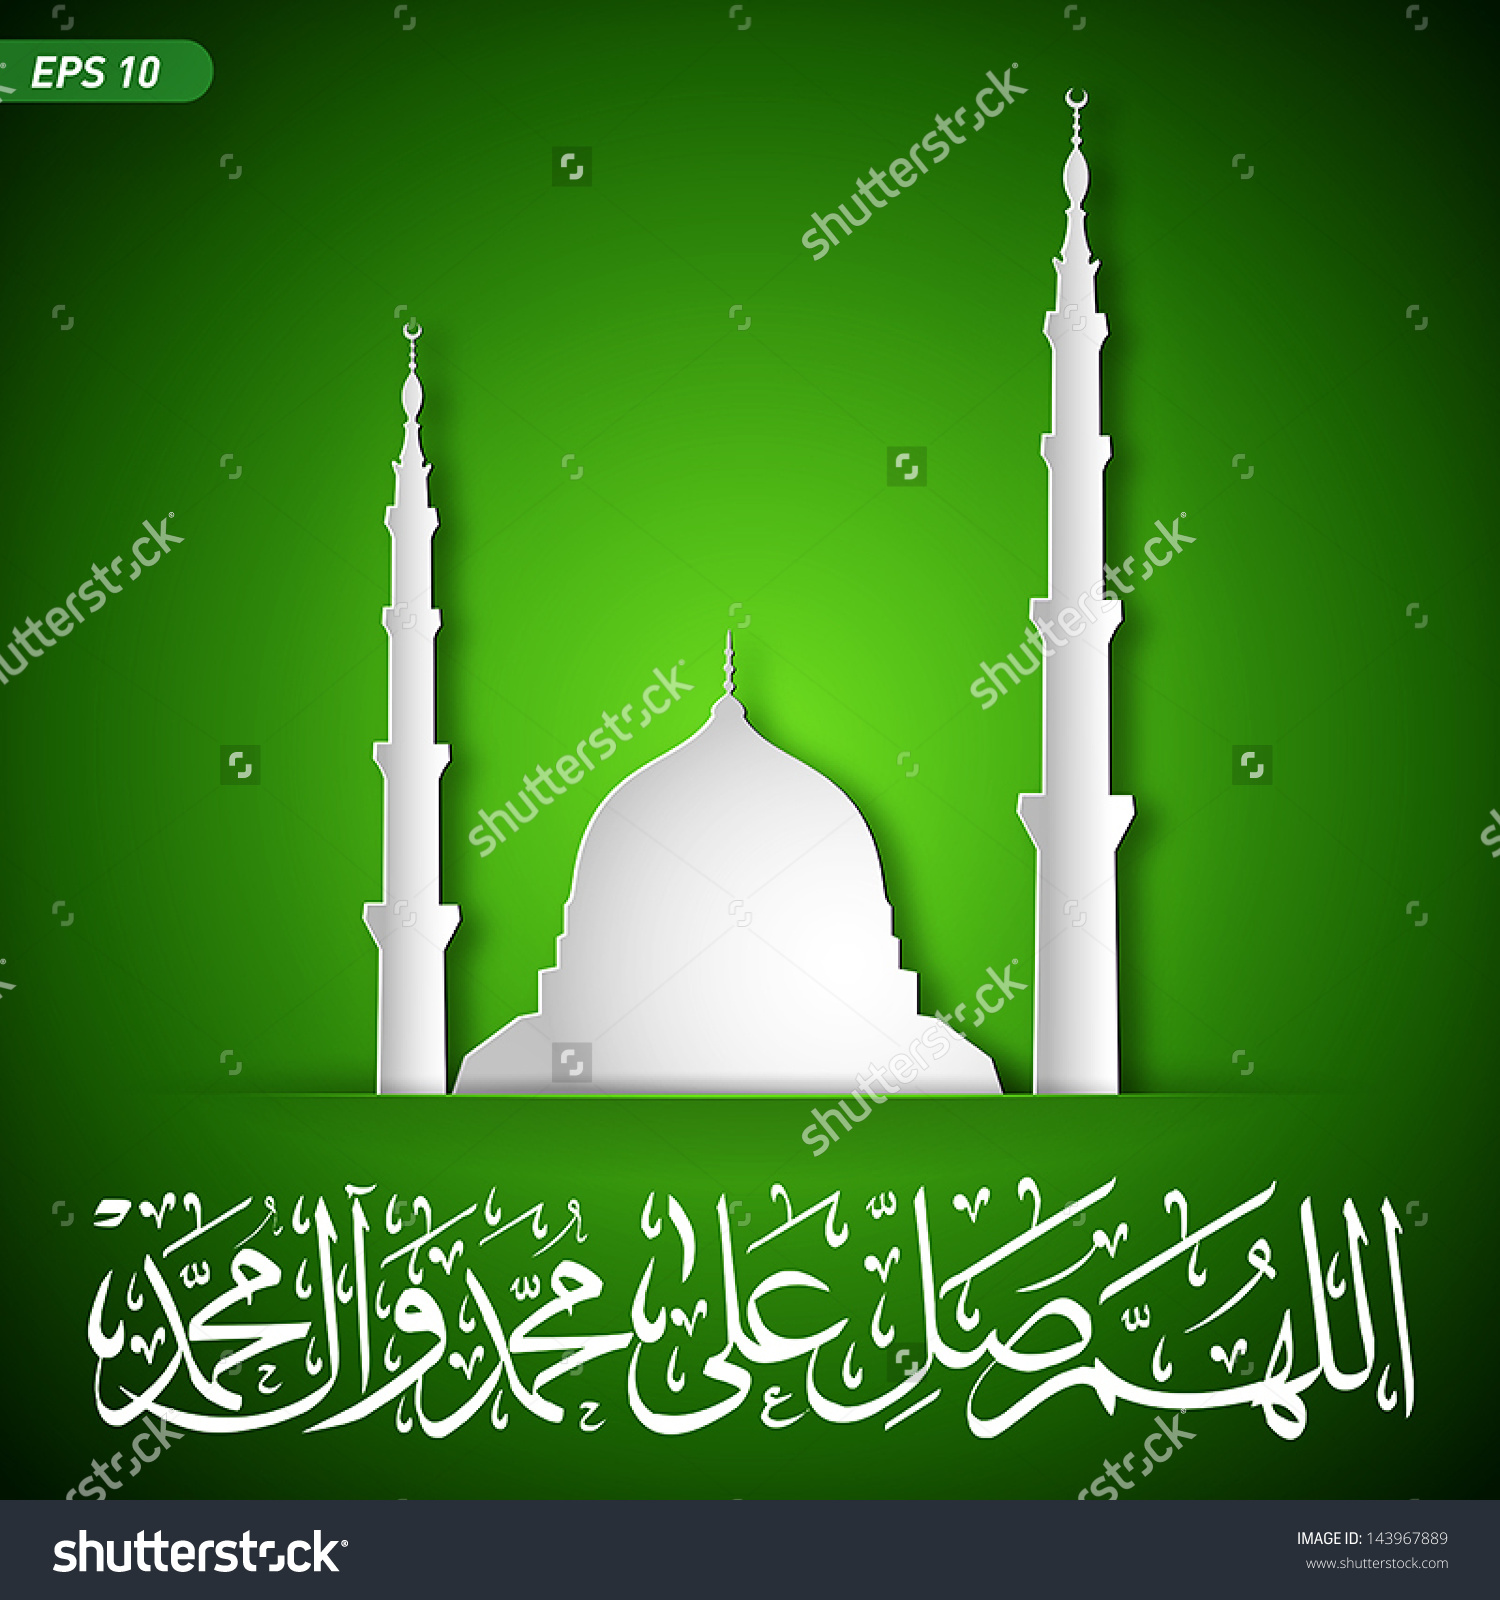 Arabic Islamic Calligraphy Salat Salavat Translation Stock Vector.